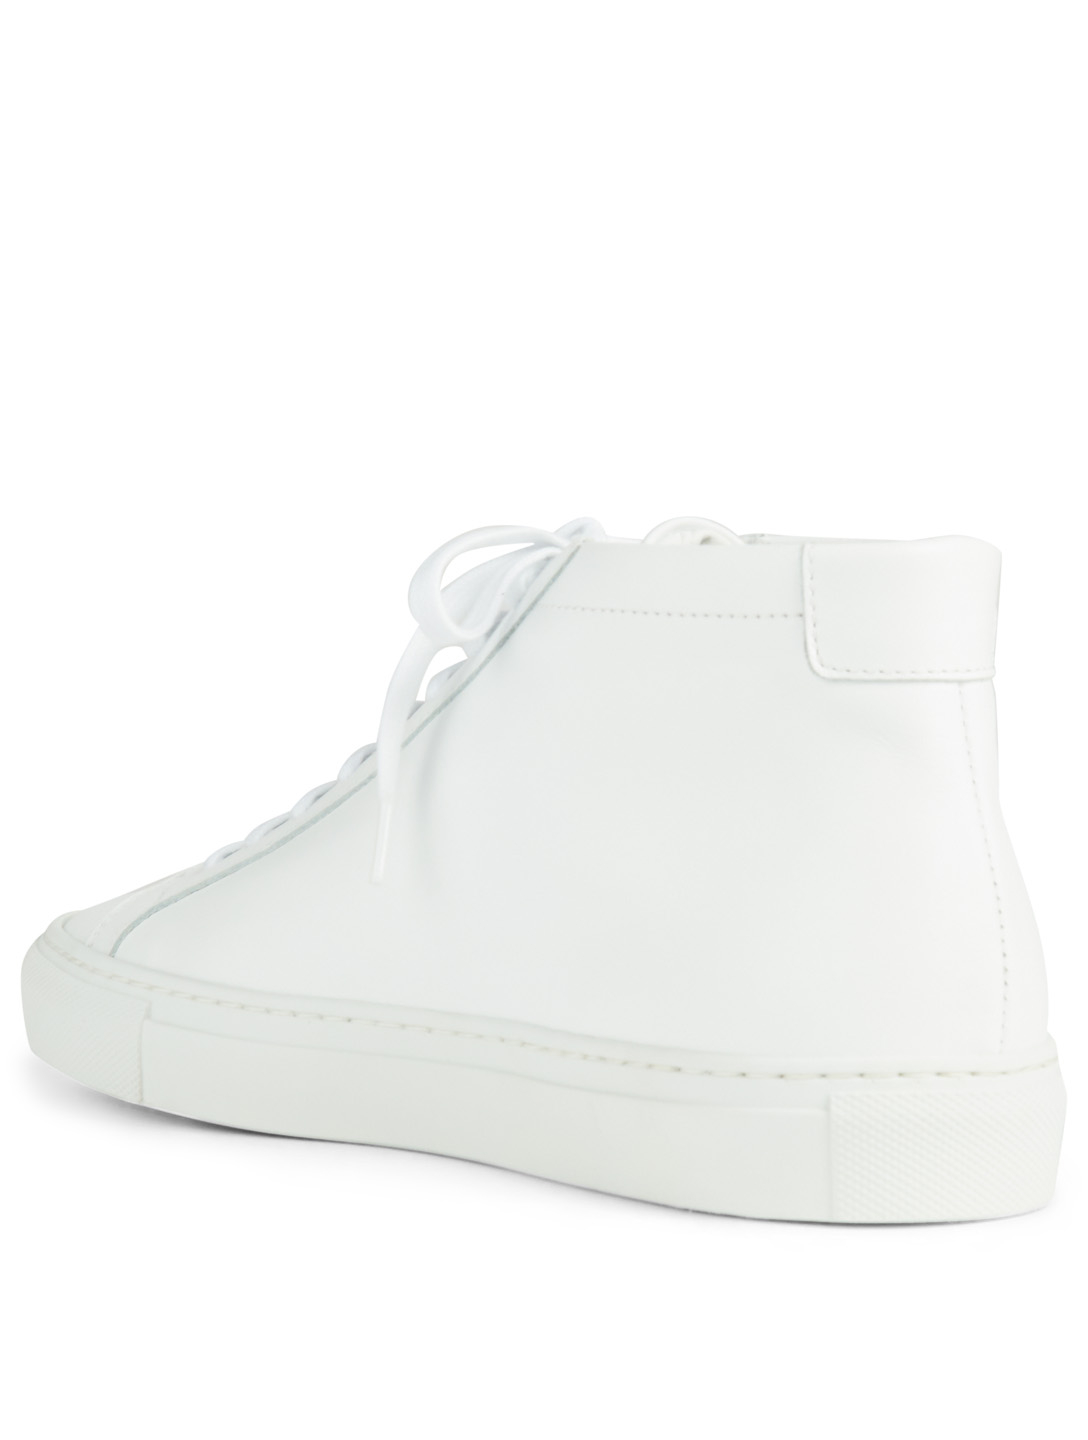 c6623202b37 ... COMMON PROJECTS Original Achilles Leather High-Top Sneakers Women's  White ...